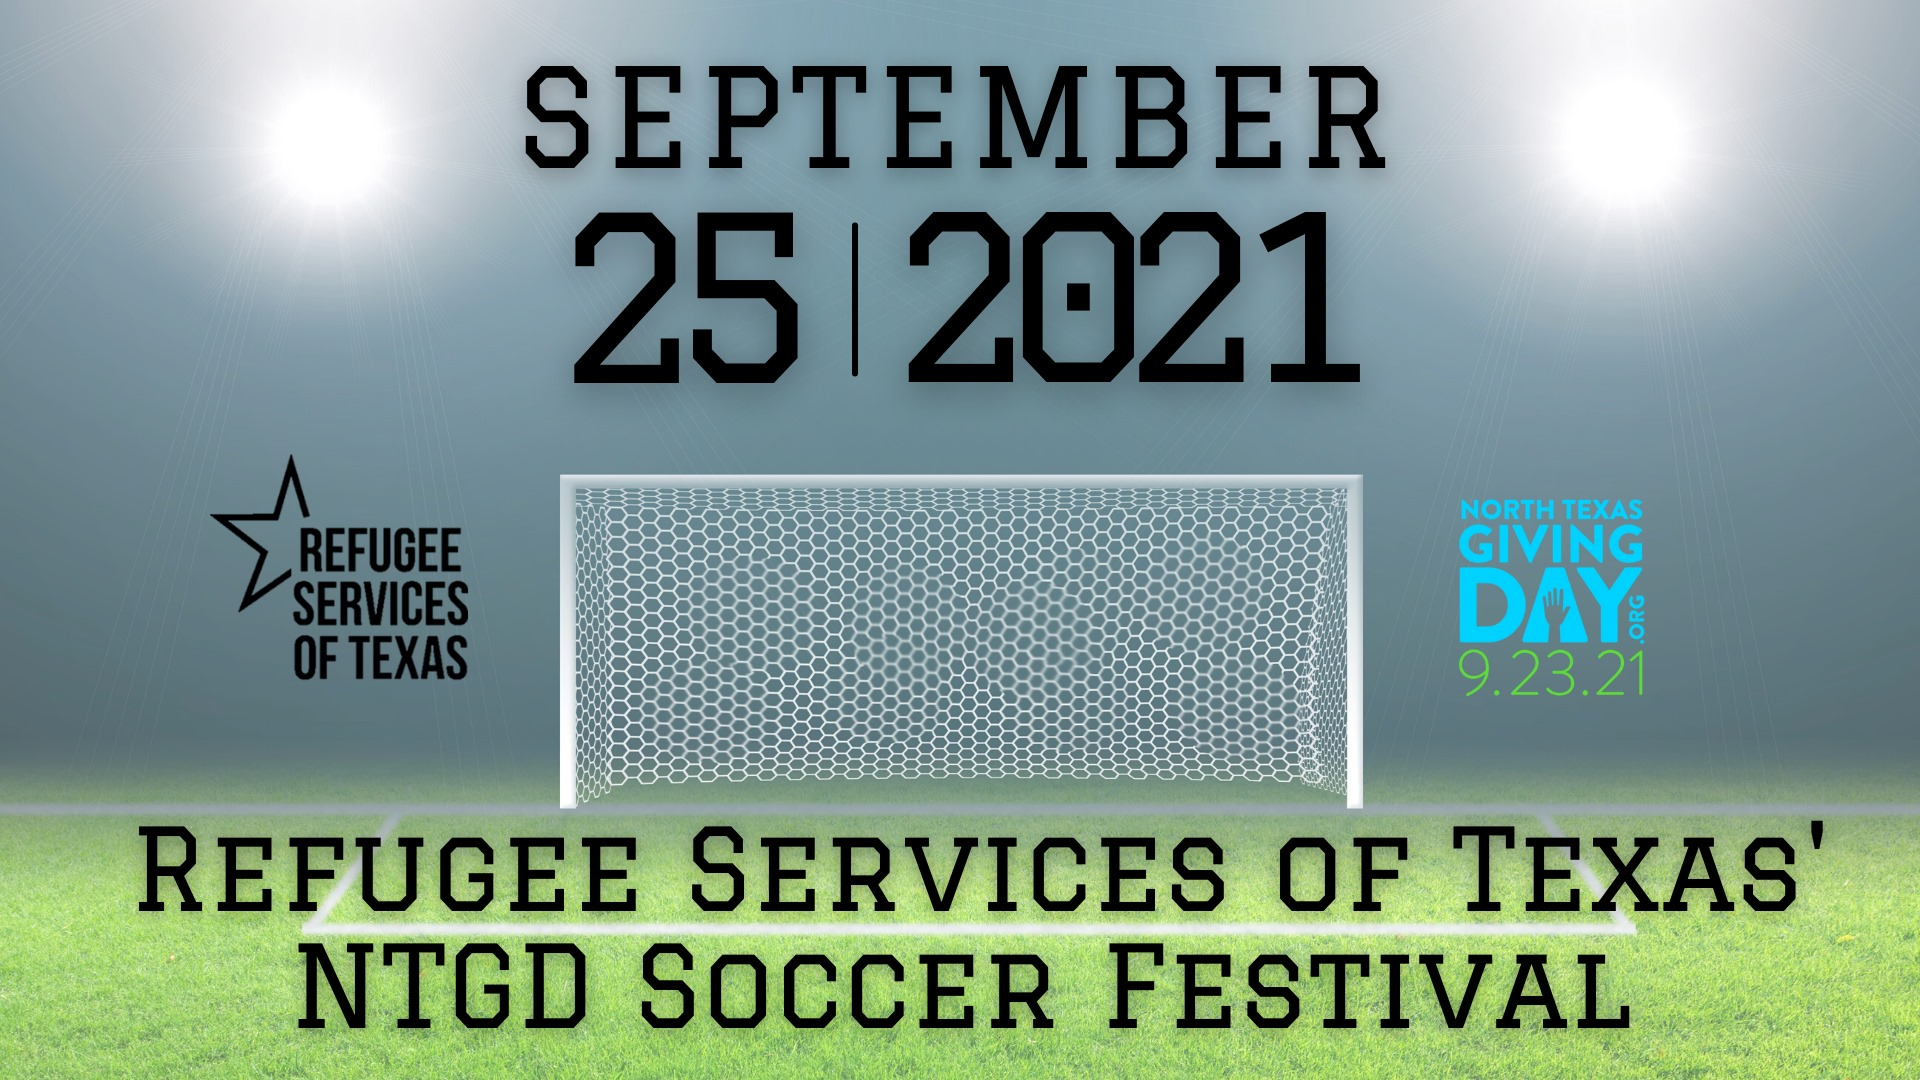 Refugee Services of Texas, North Texas Giving Day Soccer Festival